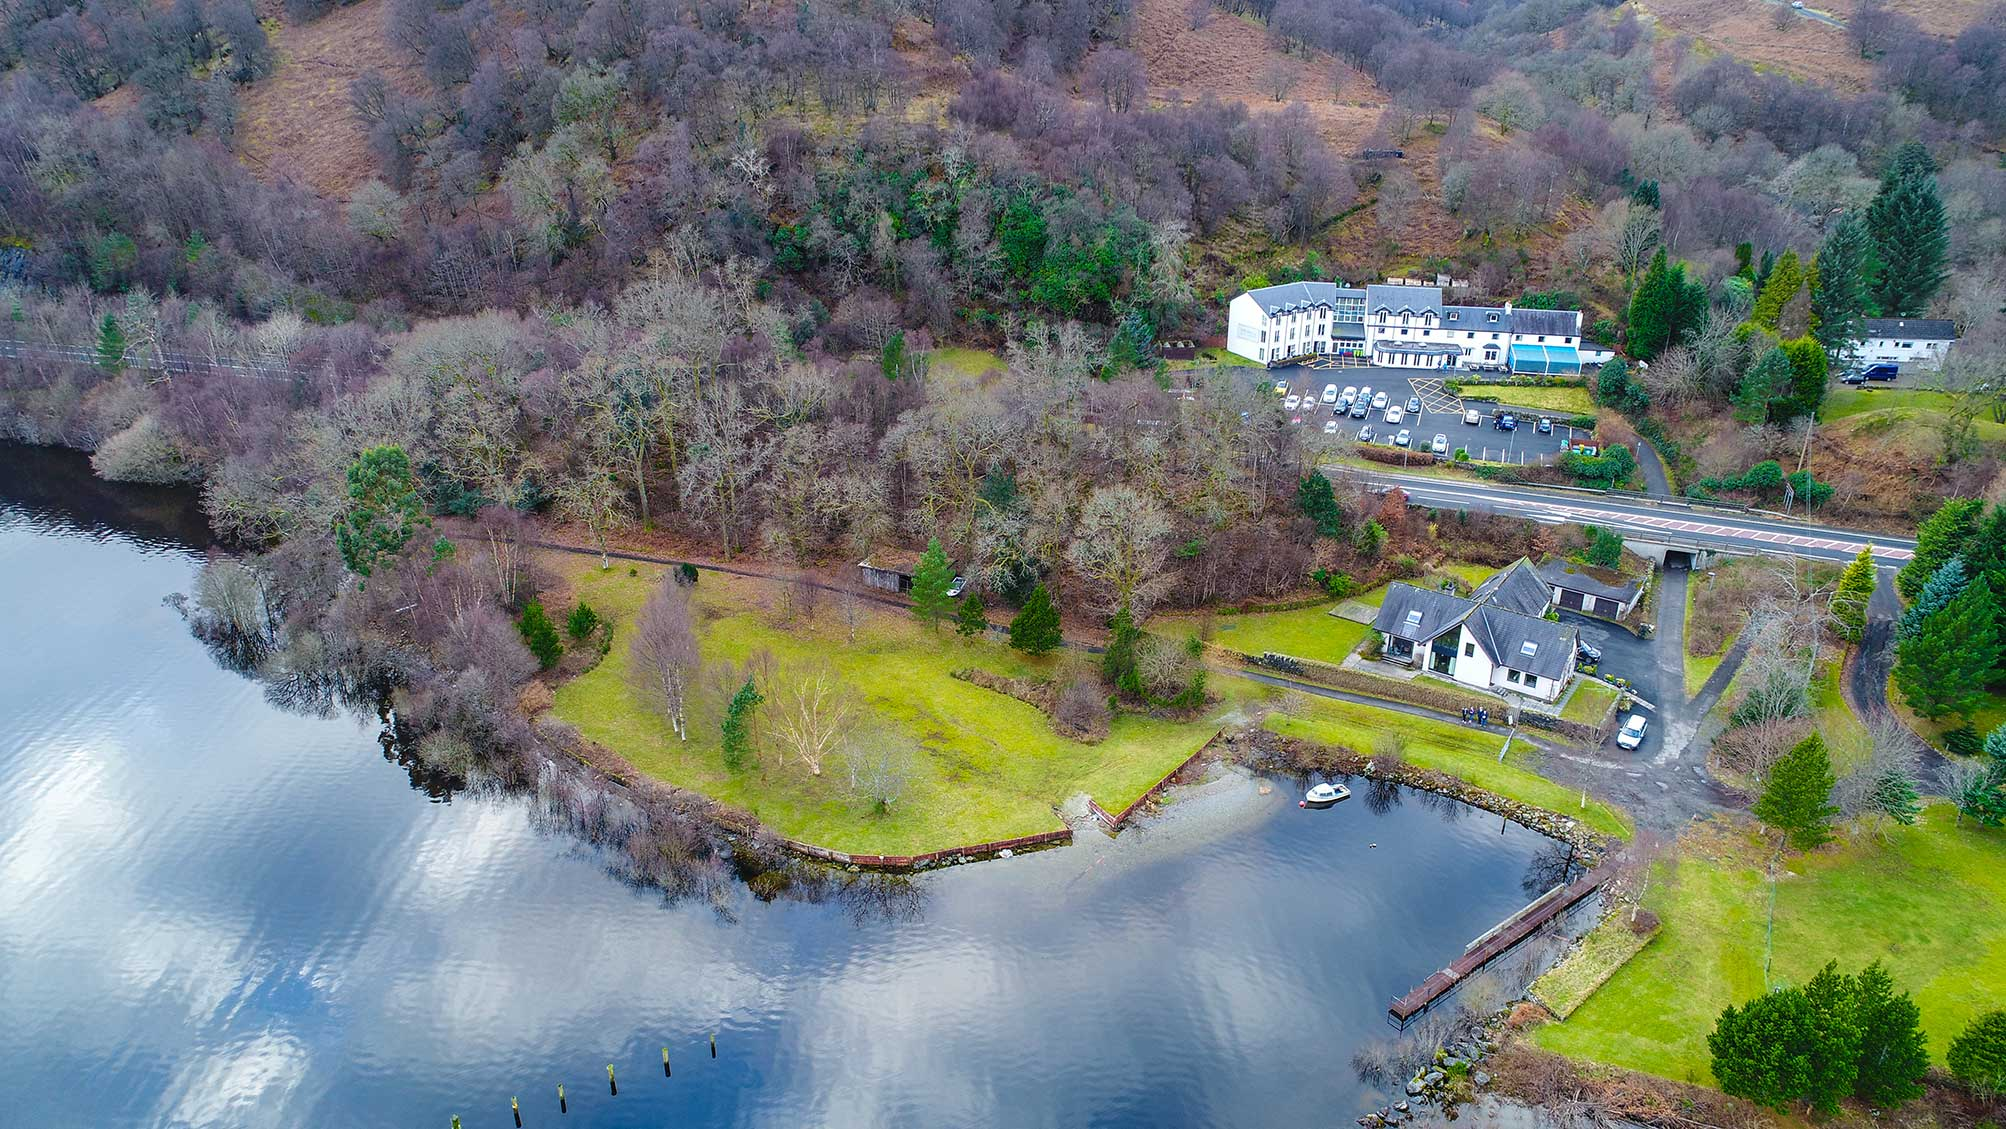 The-Inn-on-Loch-Lomond-Drone-Photo